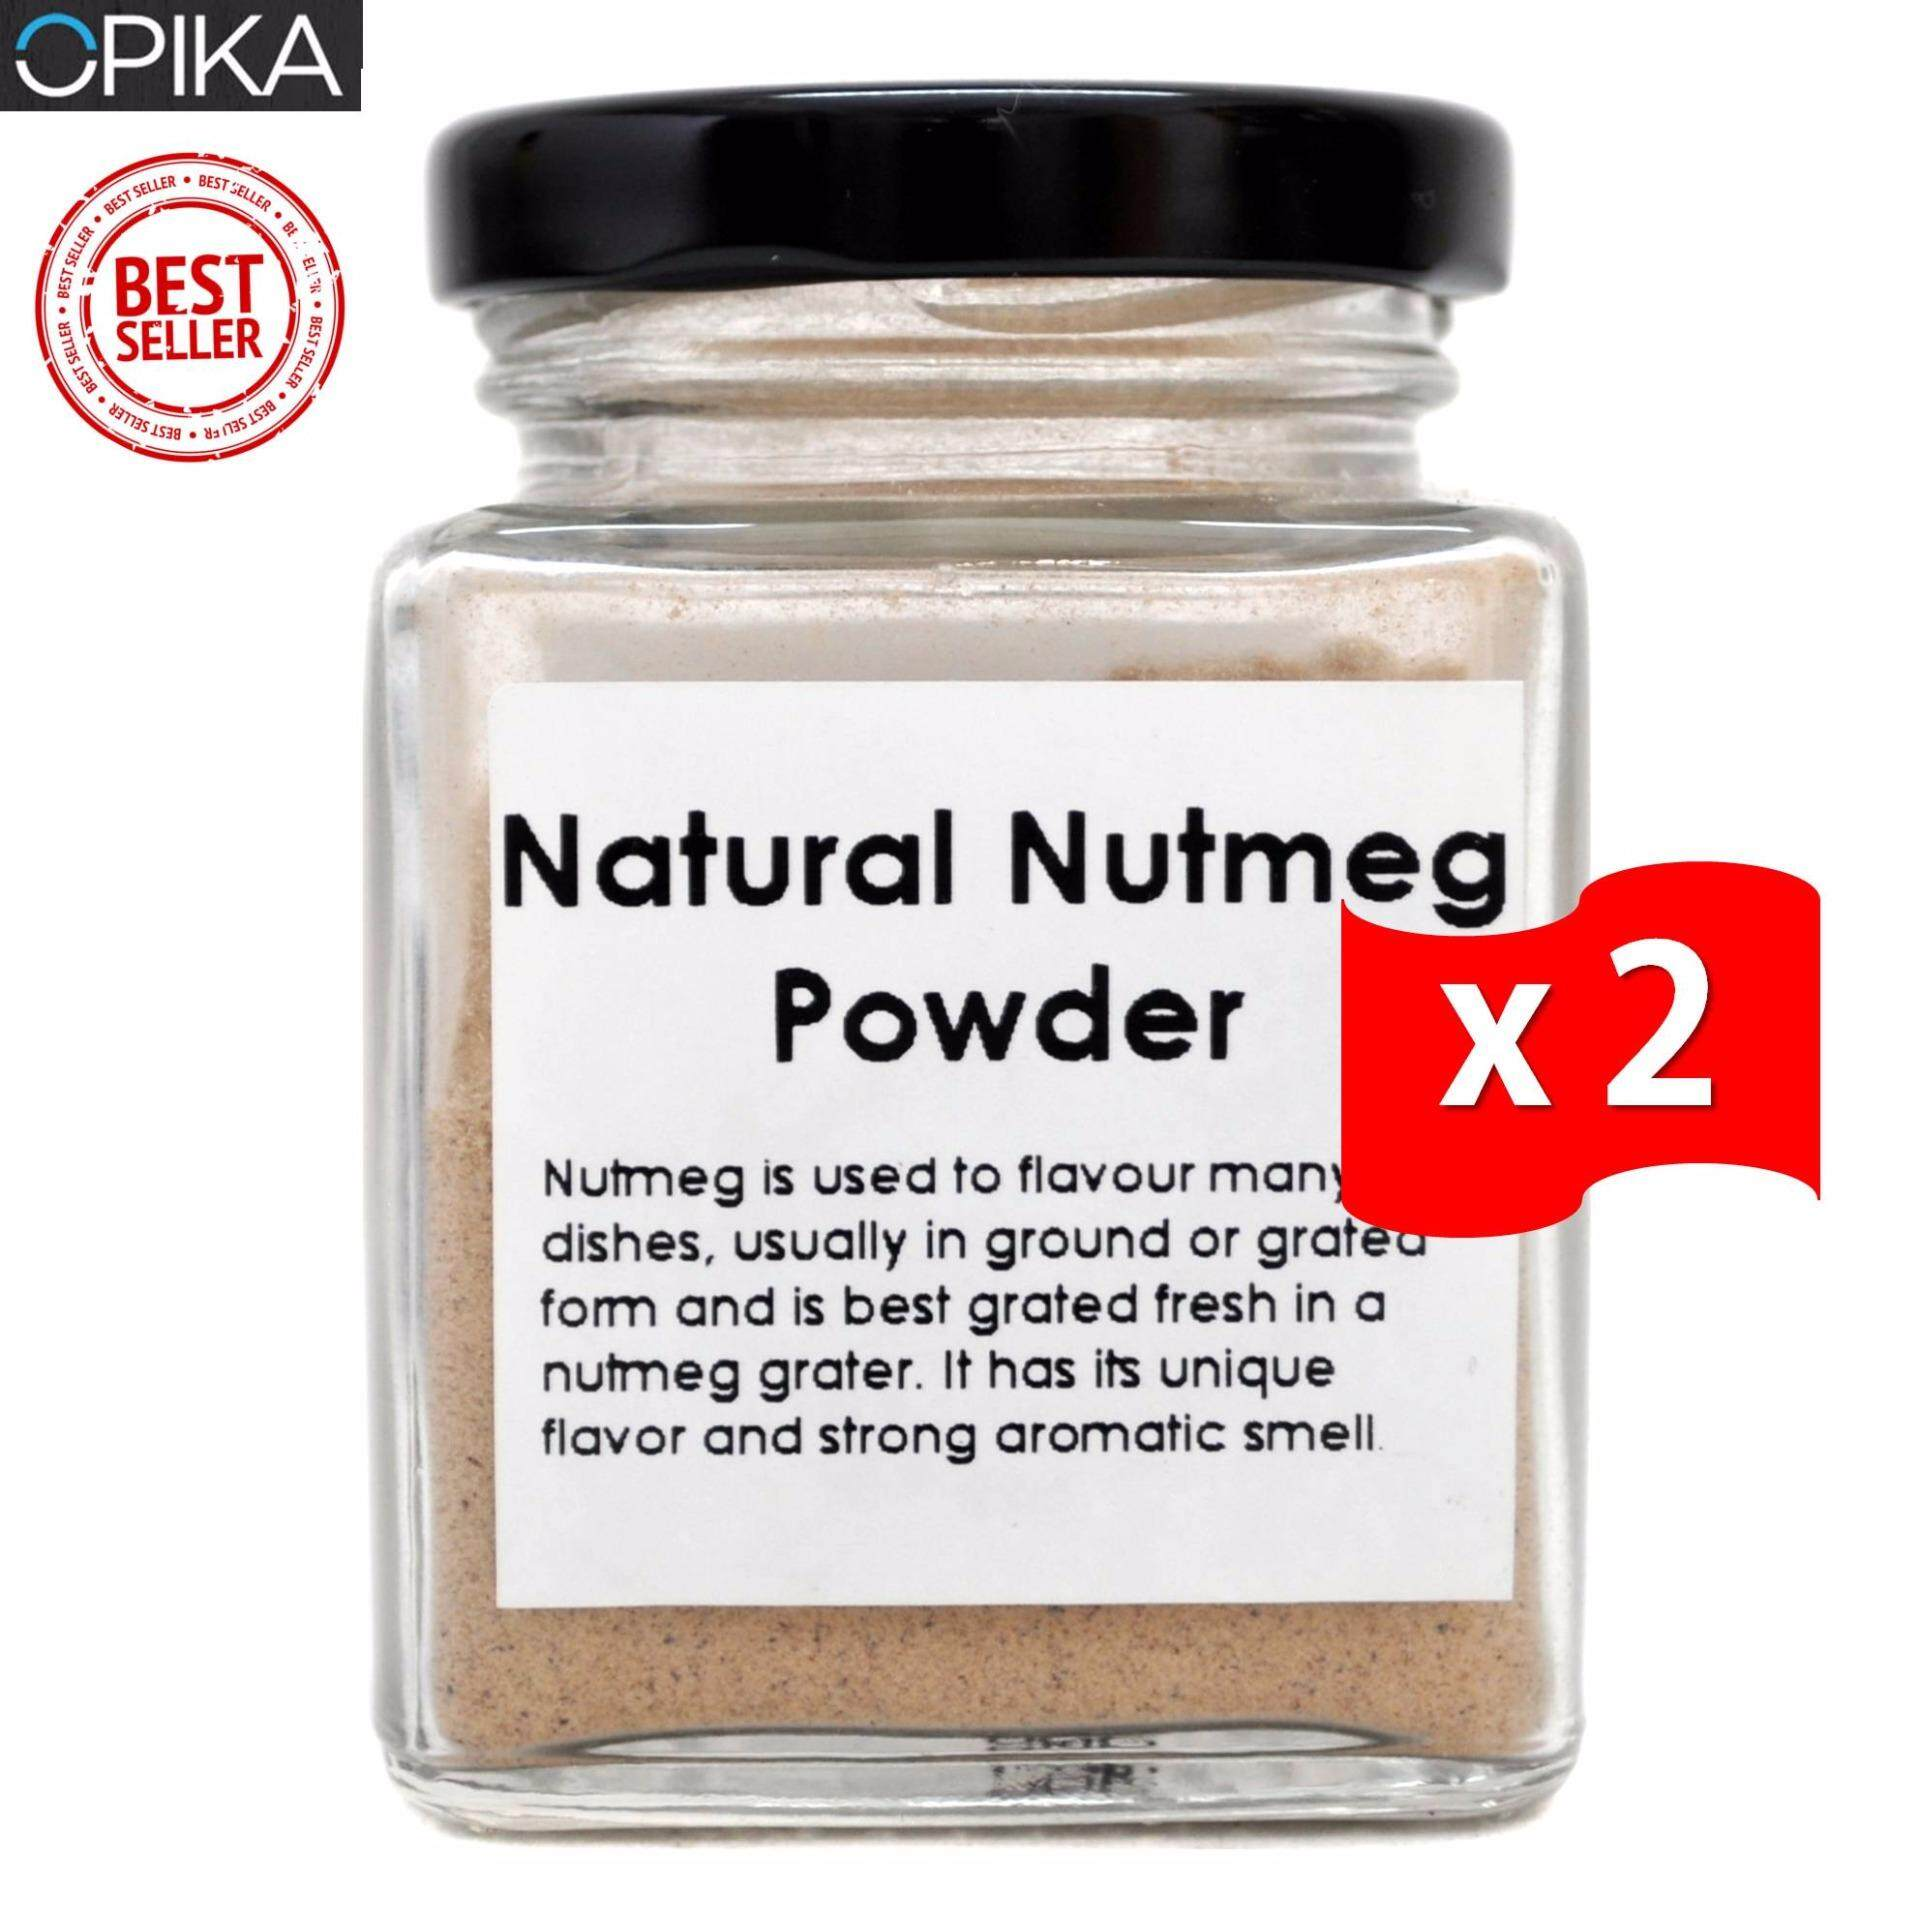 OPIKA Natural Nutmeg Powder 50g (Twin Pack)